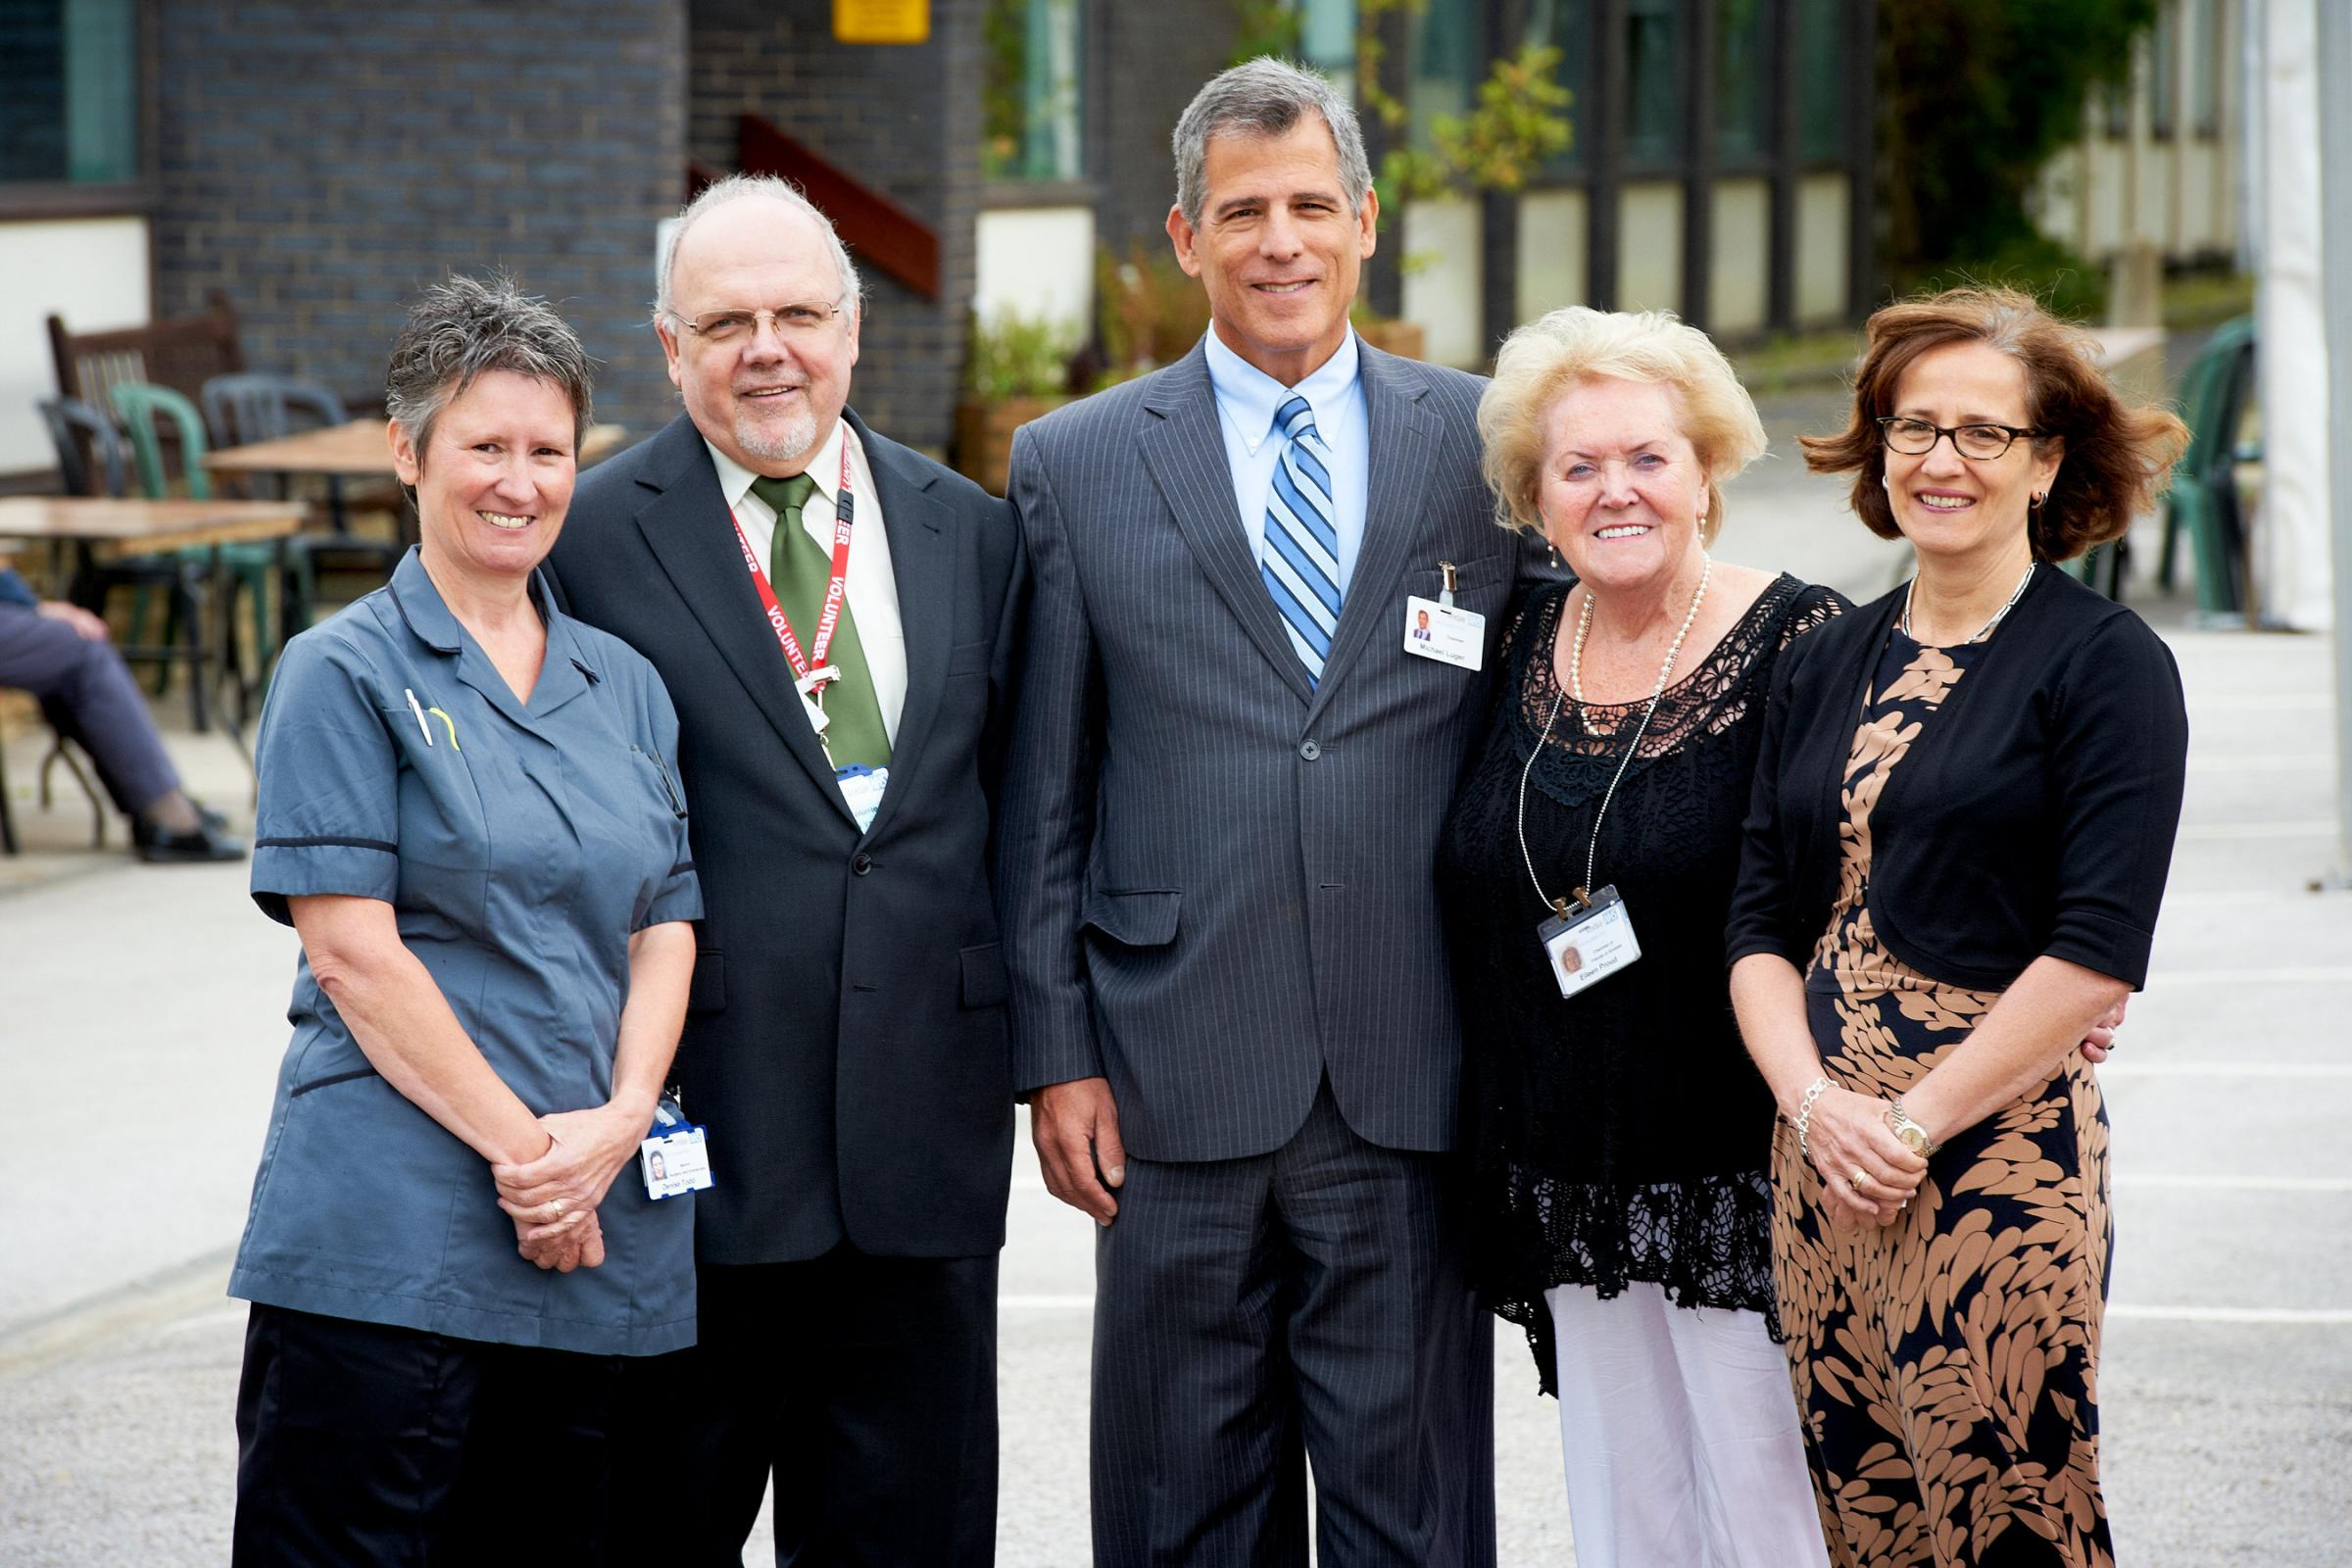 From left, matron Denise Todd, New Venture chairman Mike Yates, Airedale NHS Foundation Trust chairman Michael Luger, Friends of Airedale chairman Eileen Proud, foundation trust chief executive Bridget Fletcher